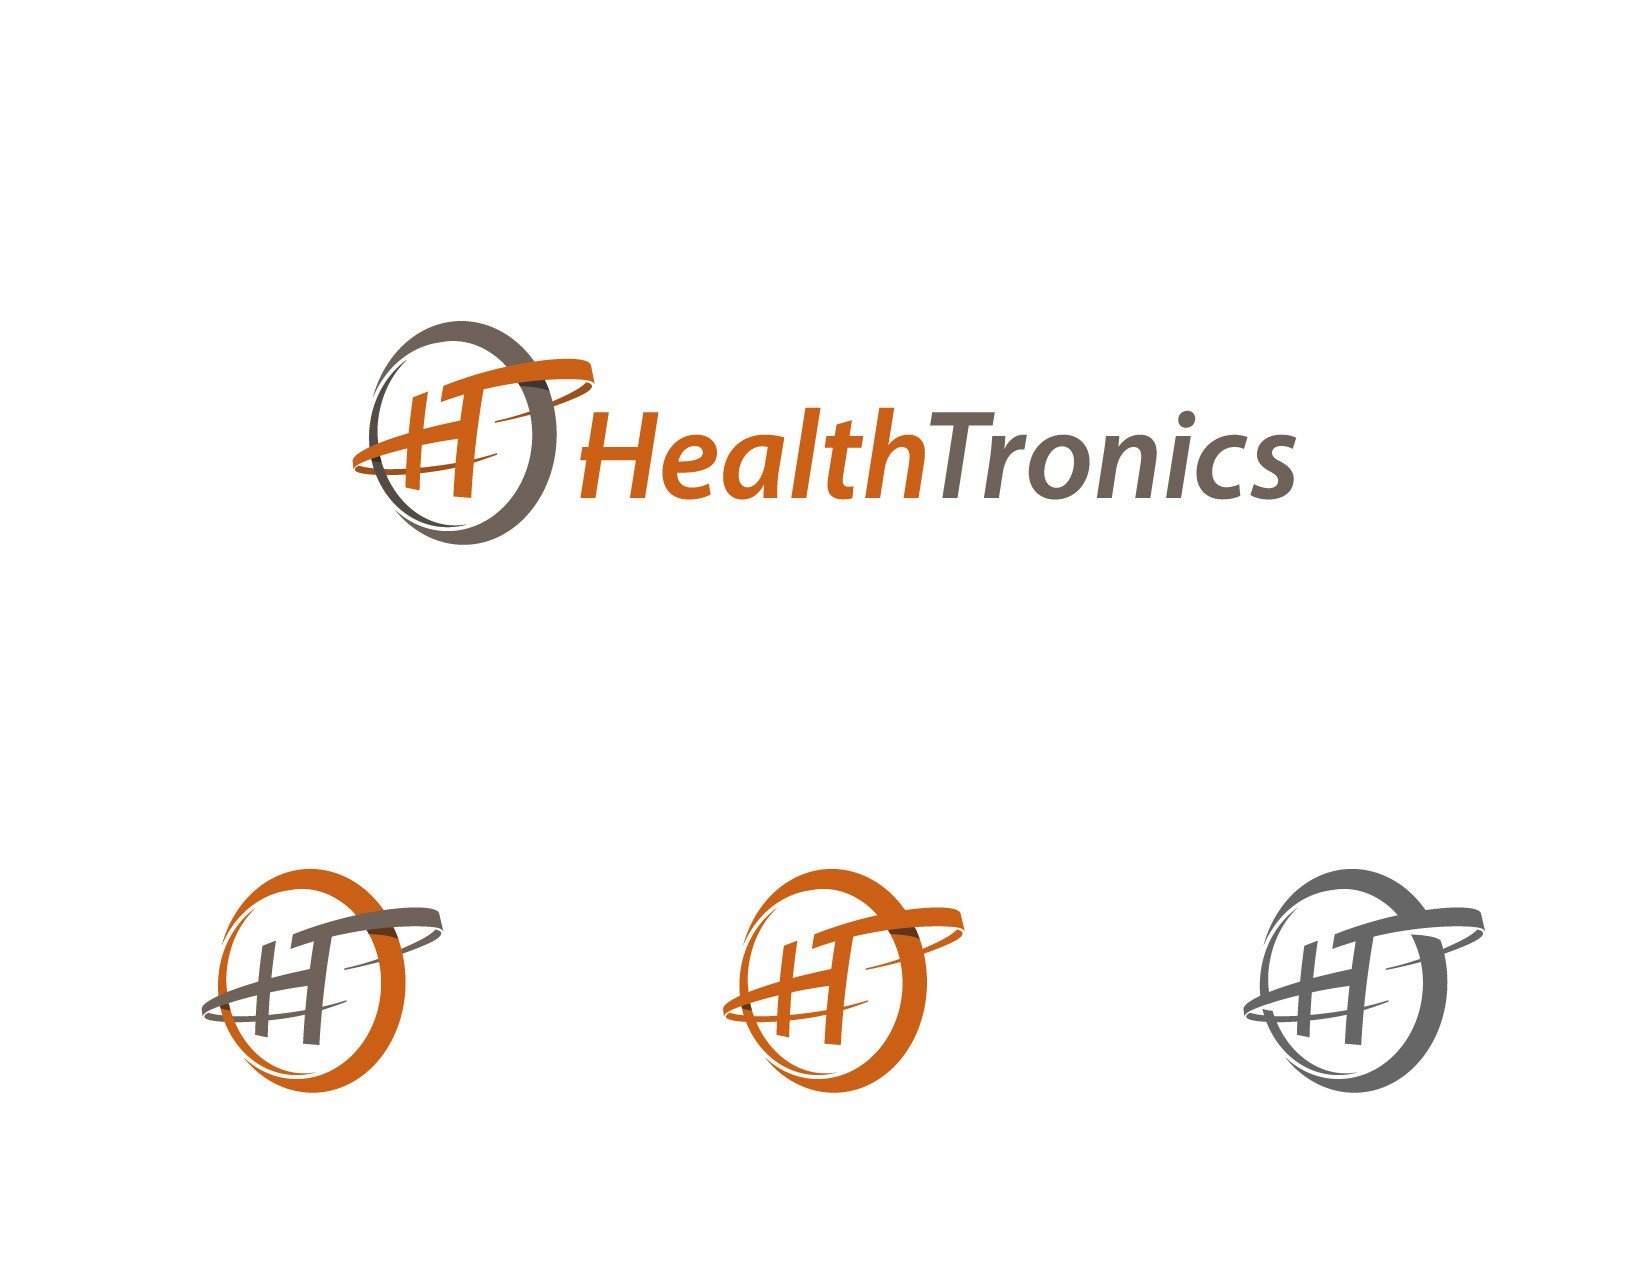 Create a winning logo design for HealthTronics, Inc. as they go independent.